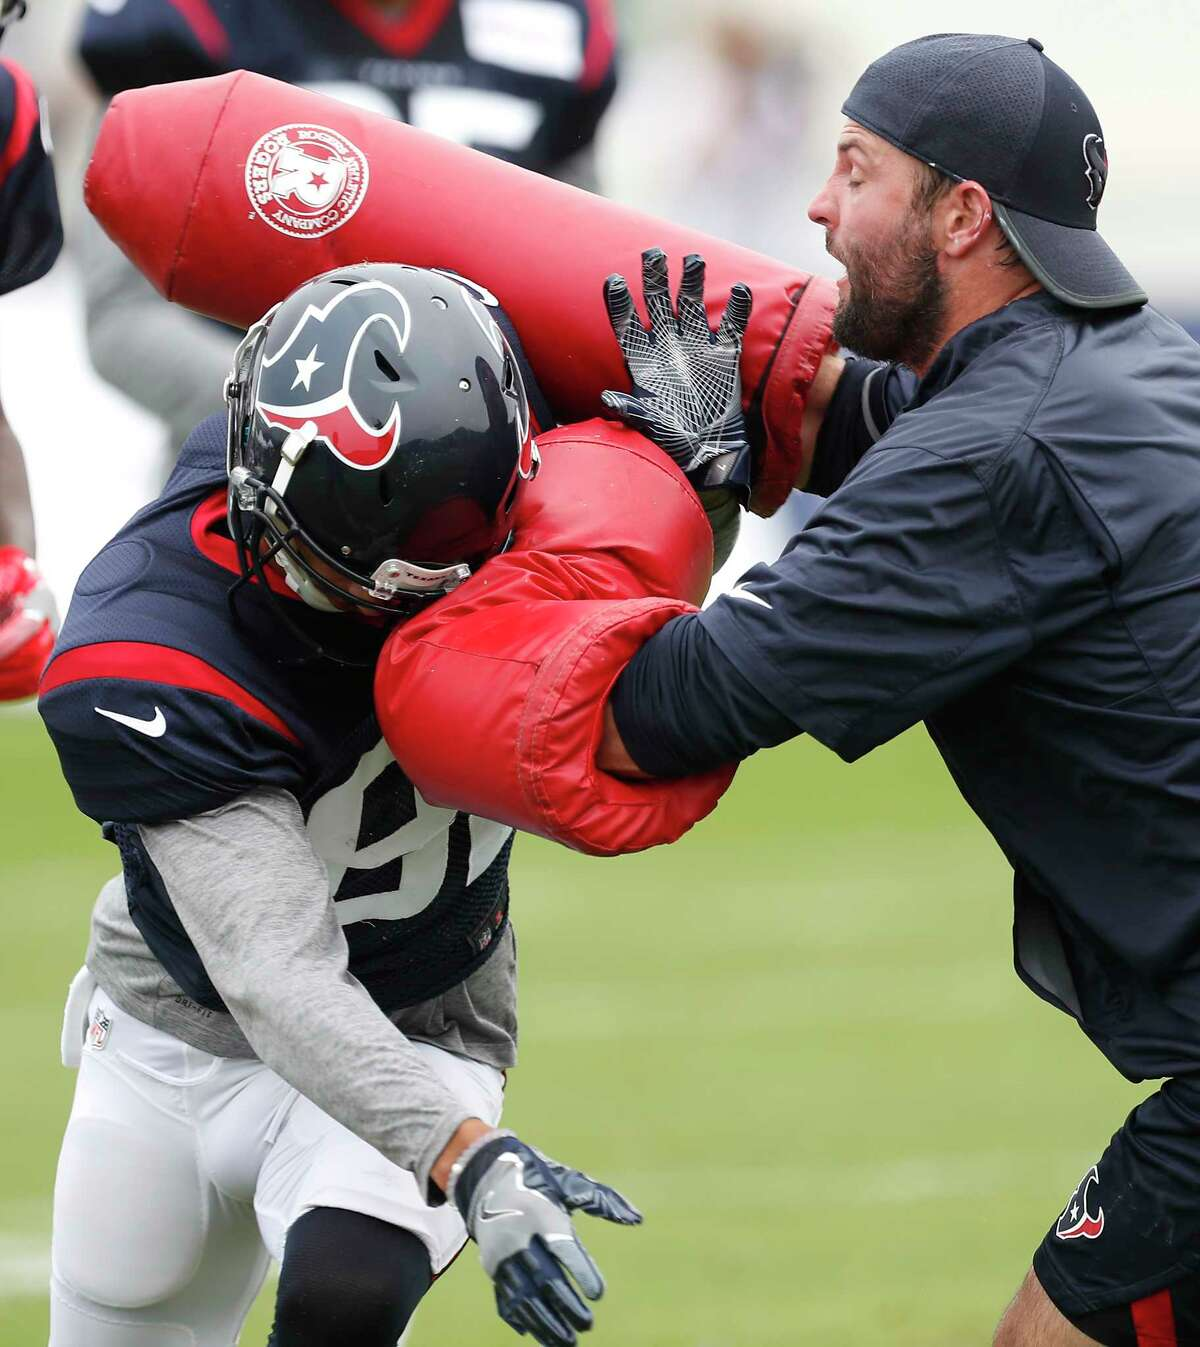 Houston Texans wide receiver Wendall Williams (82) runs a drill with offensive assistant Wes Welker during a joint practice between the Texans and the Patriots at training camp at The Greenbrier on Wednesday, Aug. 16, 2017, in White Sulphur Springs, W.Va.